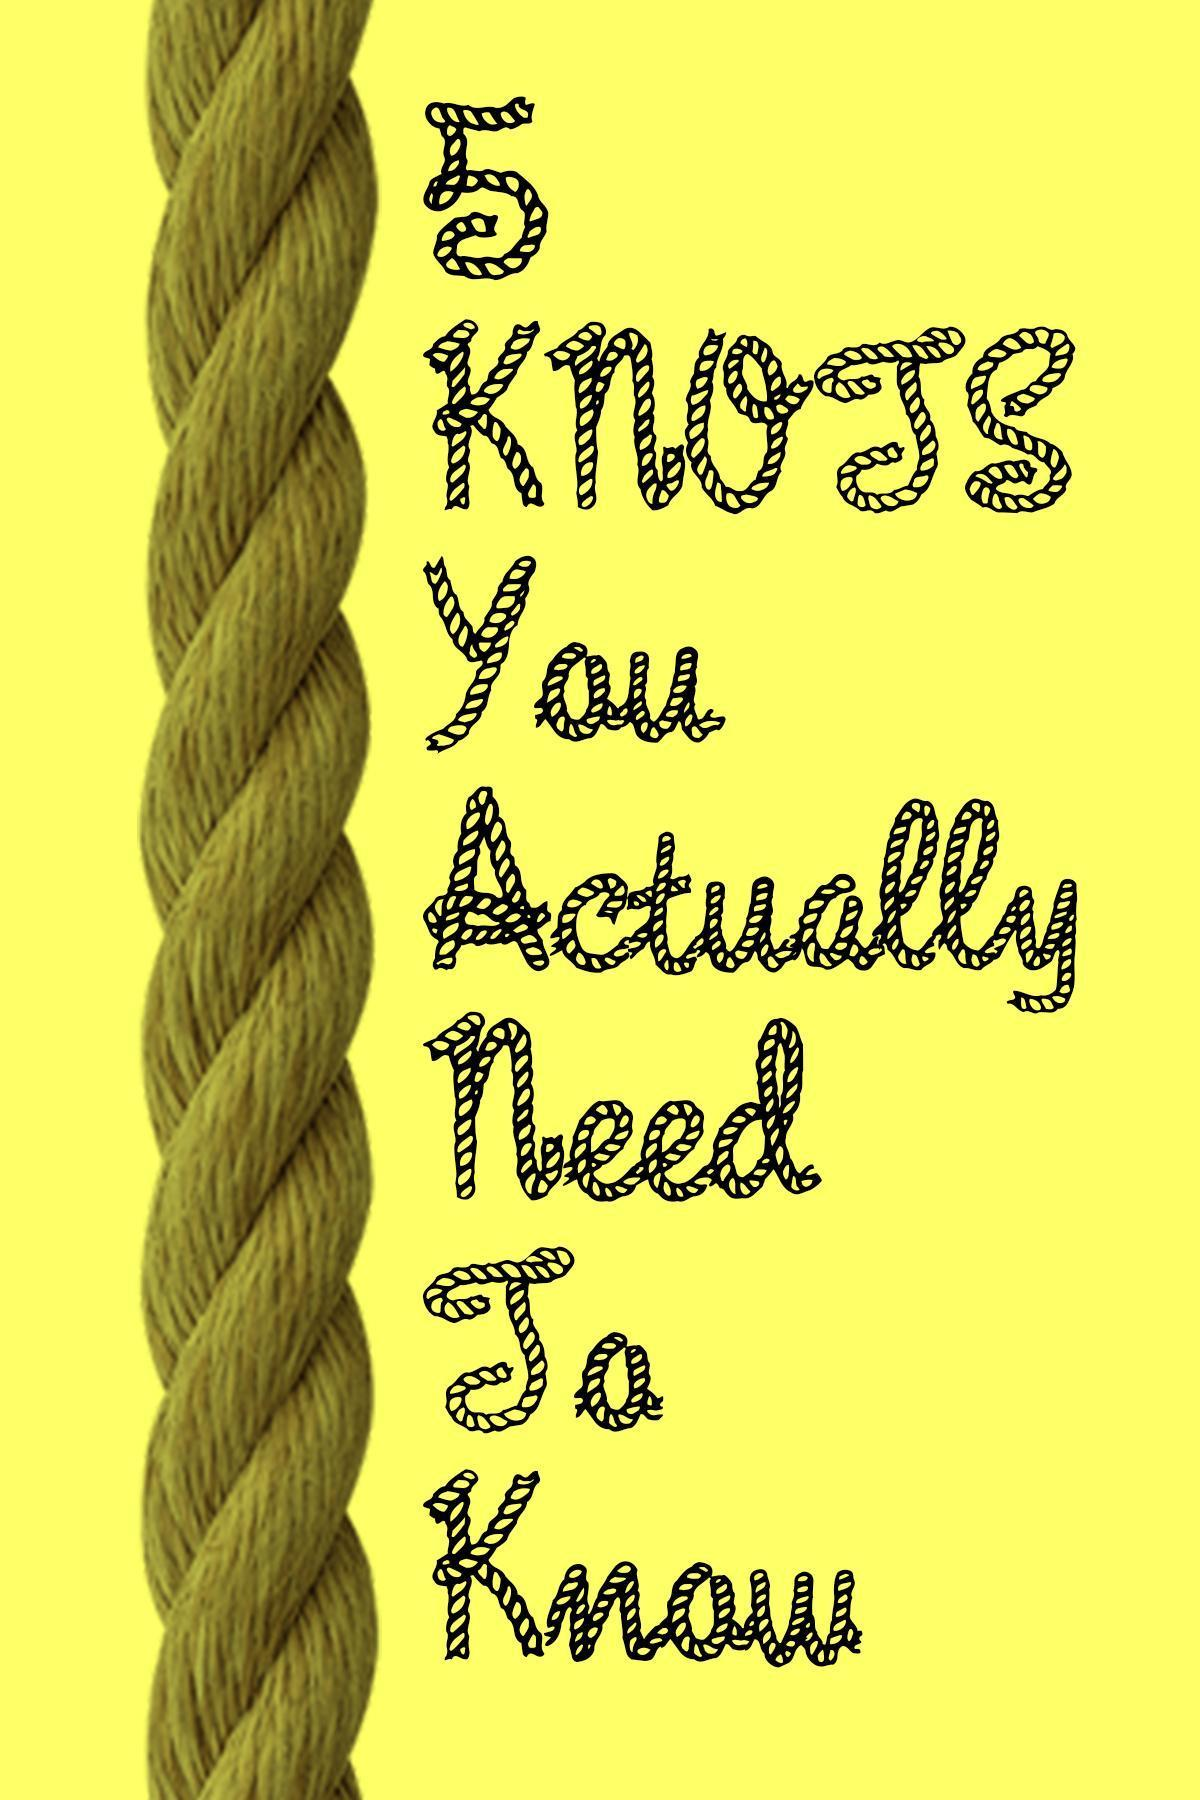 sc 1 st  Yahoo & 5 Basic Knots Everyone Should Know How to Tie